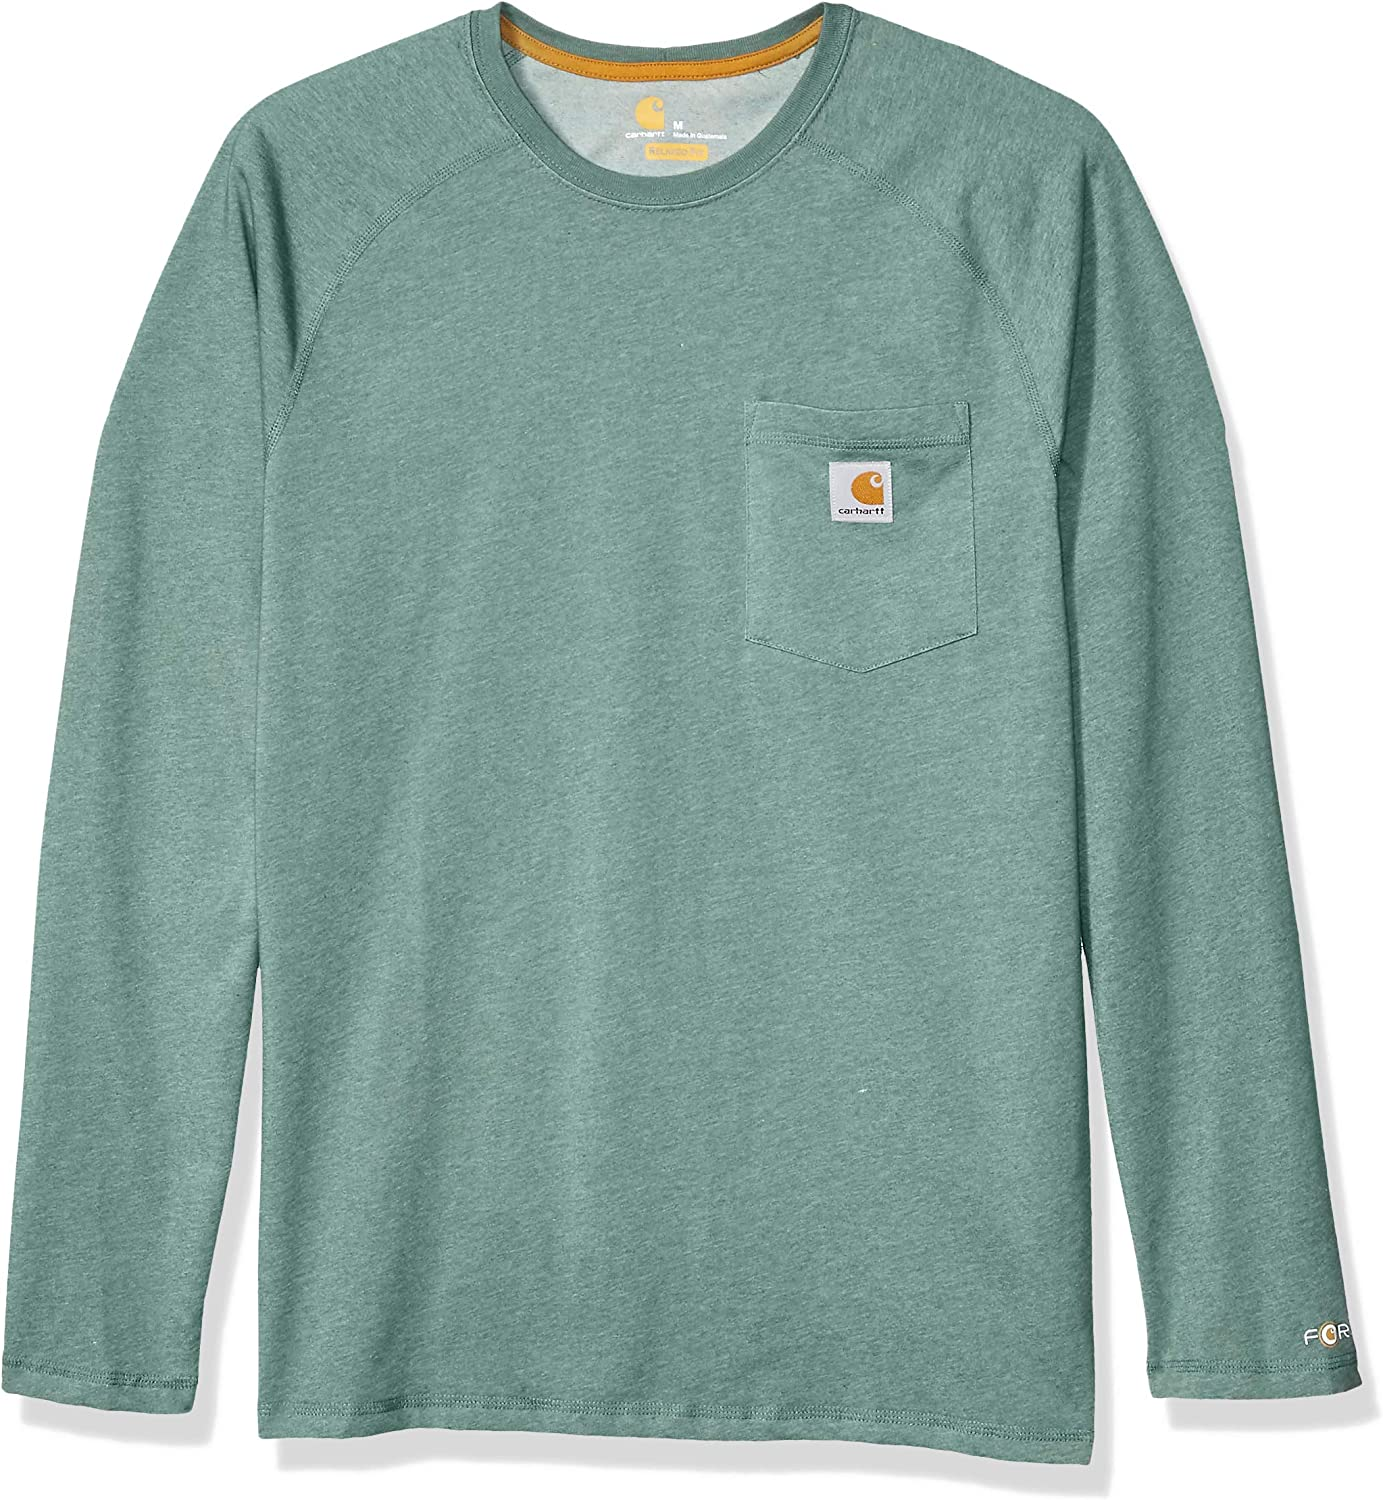 Amazon Com Carhartt Men S Force Cotton Delmont Long Sleeve T Shirt Regular And Big Tall Sizes Clothing